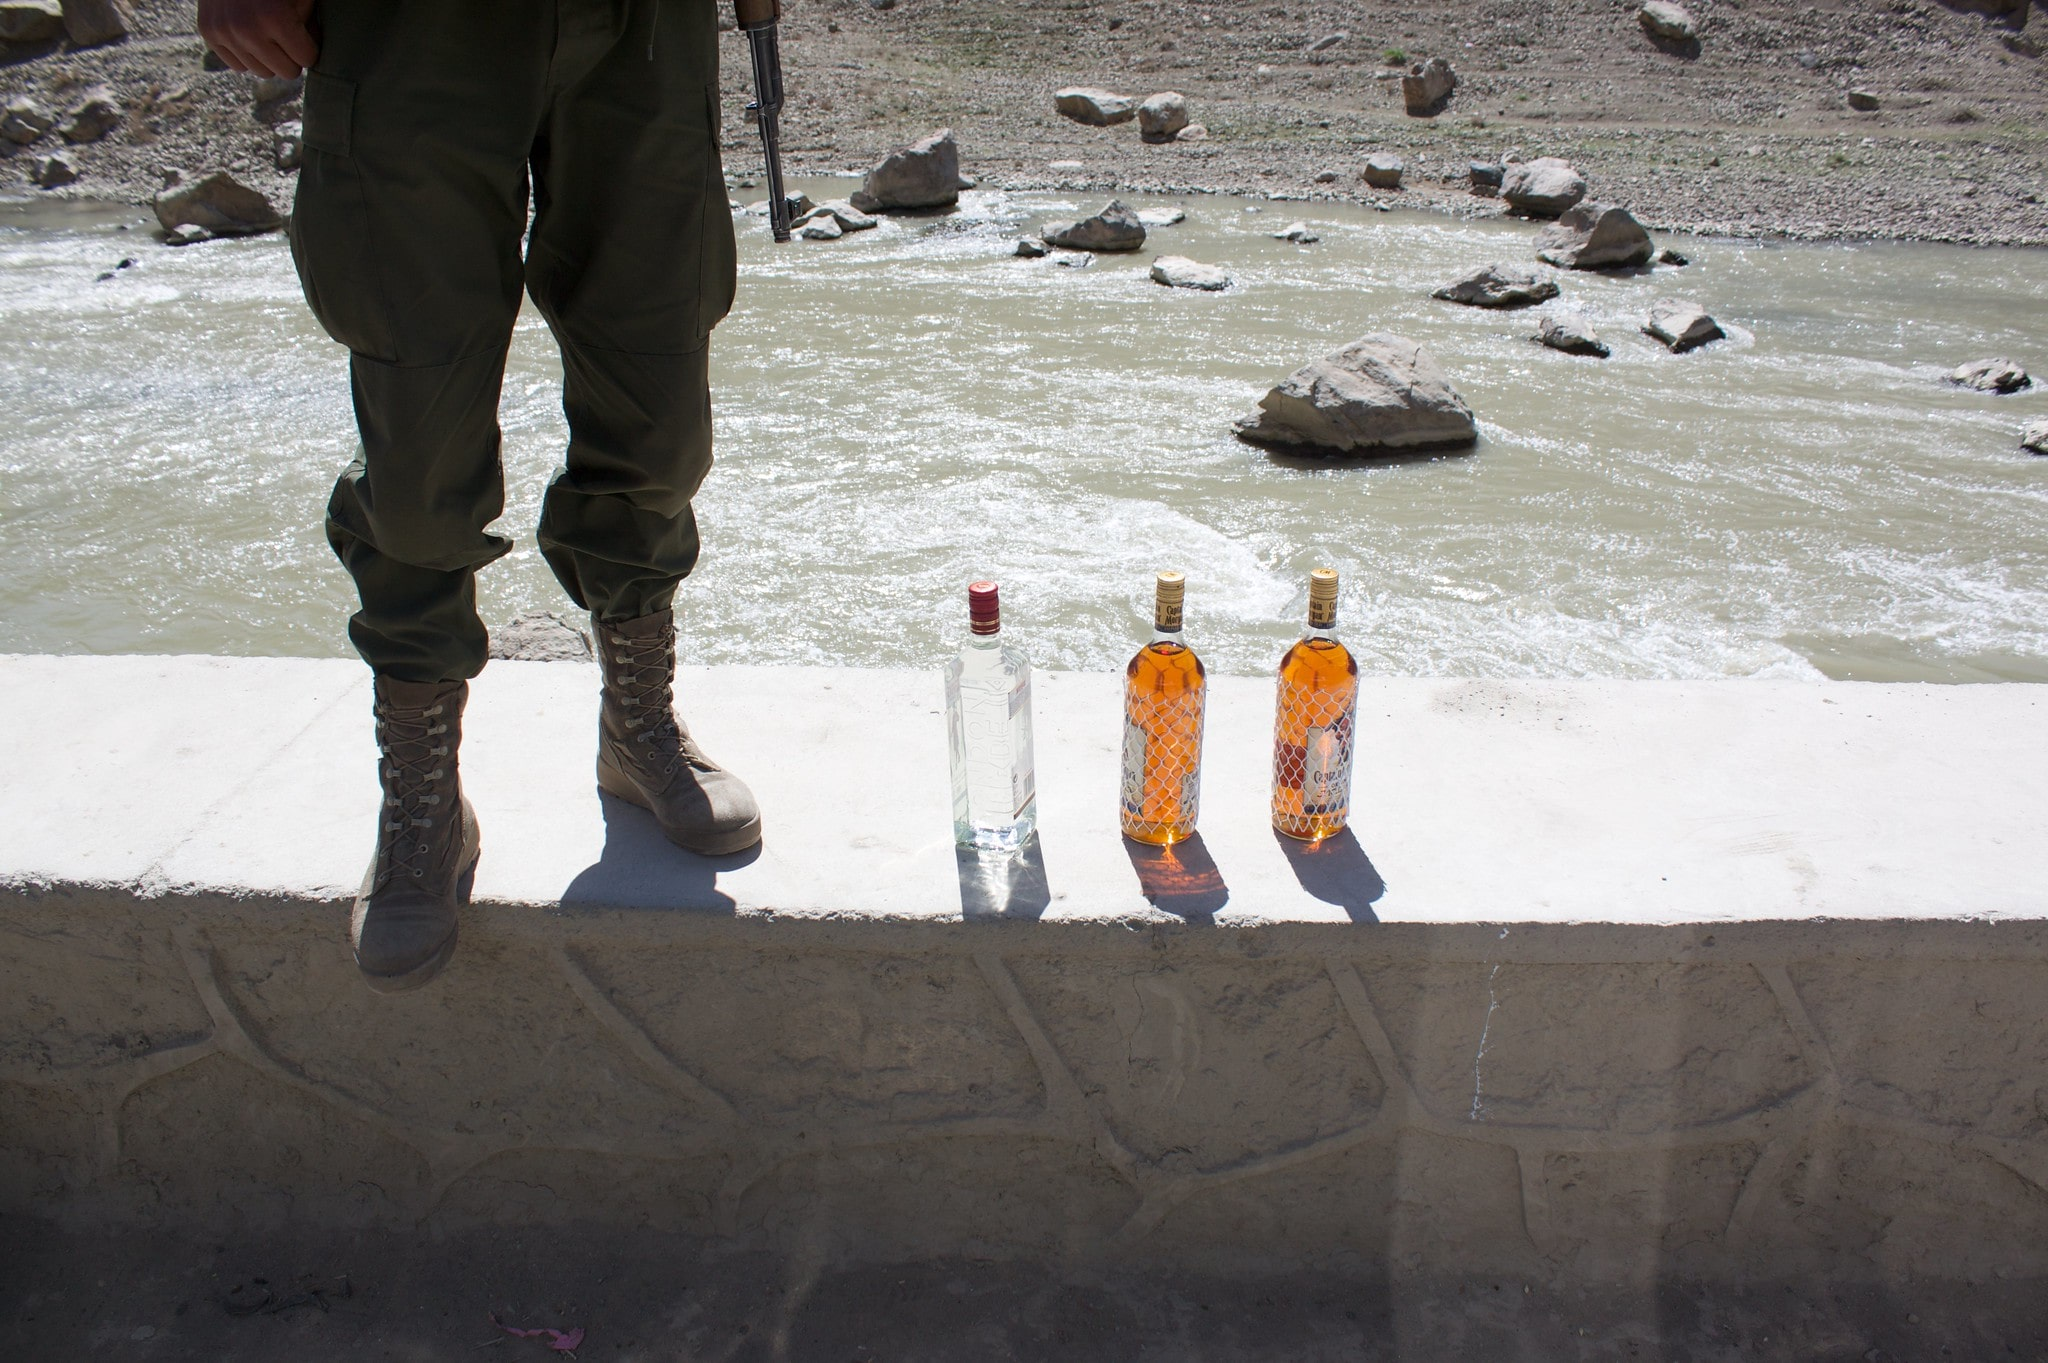 Three bottles of alcohol and a soldier.